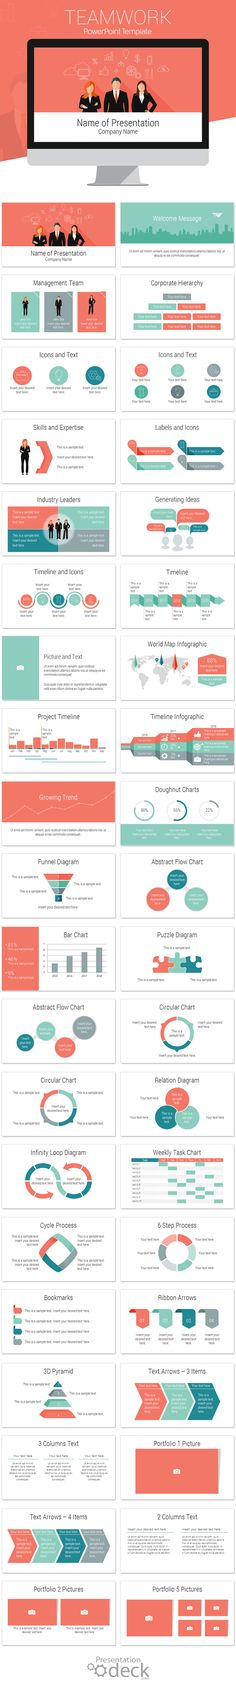 Teamwork PowerPoint template in flat design style with 40 pre-designed slides…